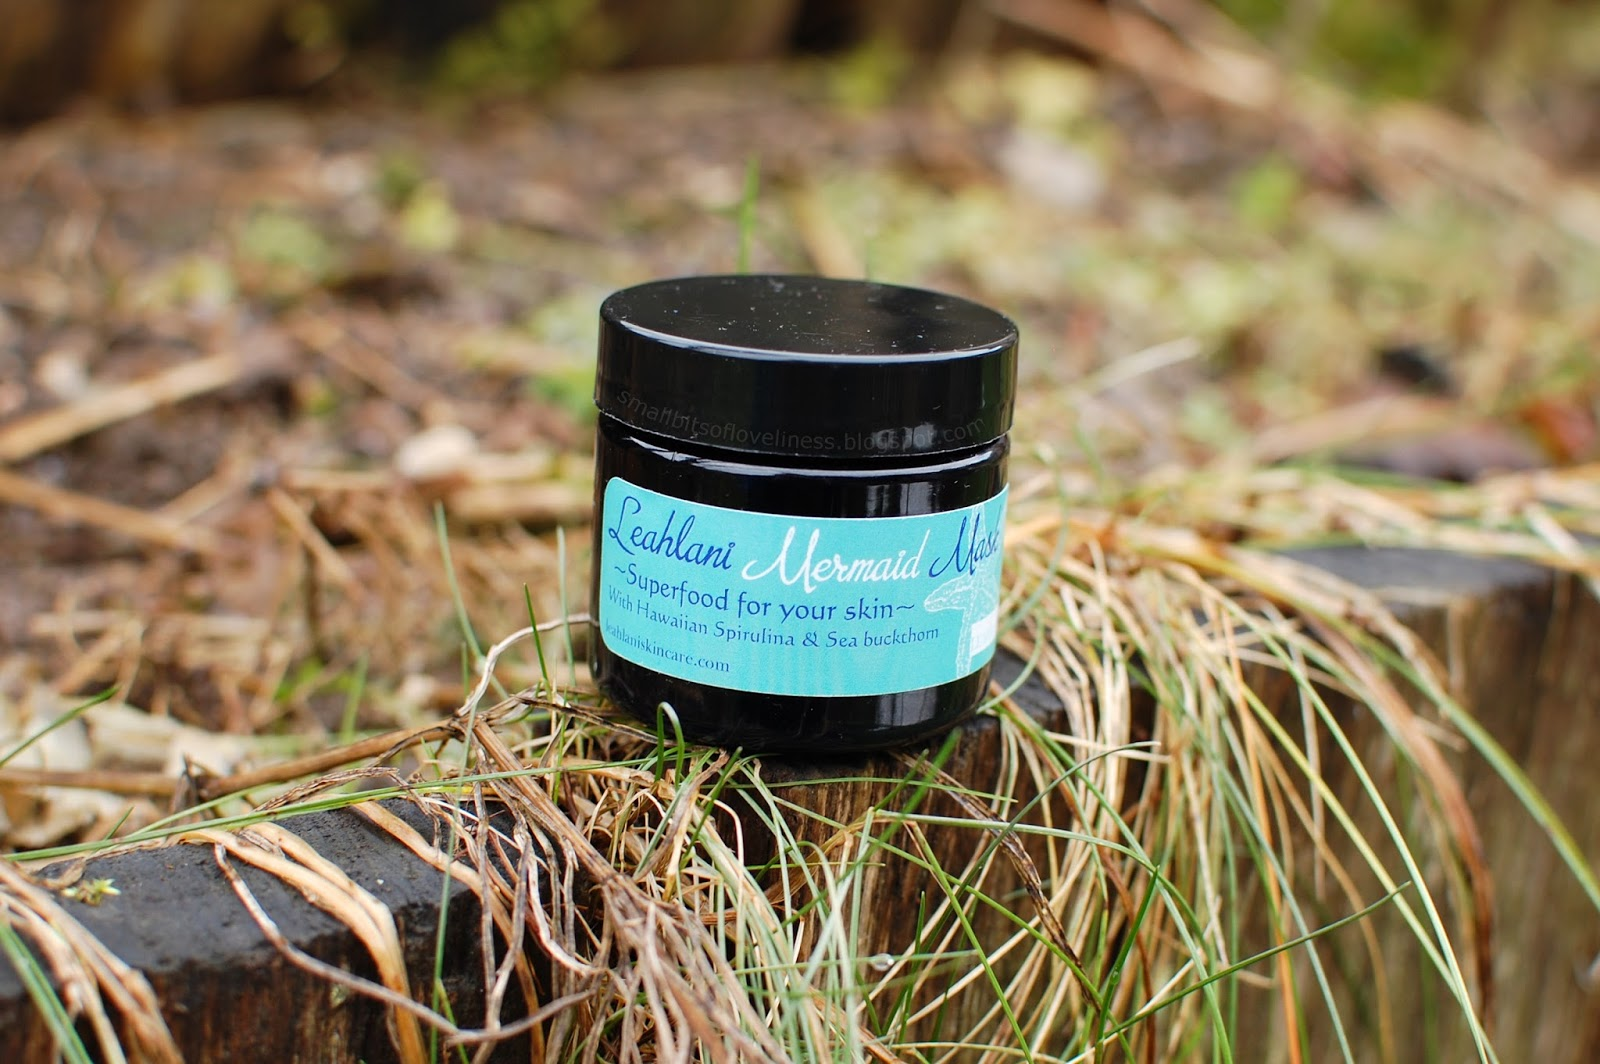 Leahlani Skincare Mermaid Mask Superfood for your skin